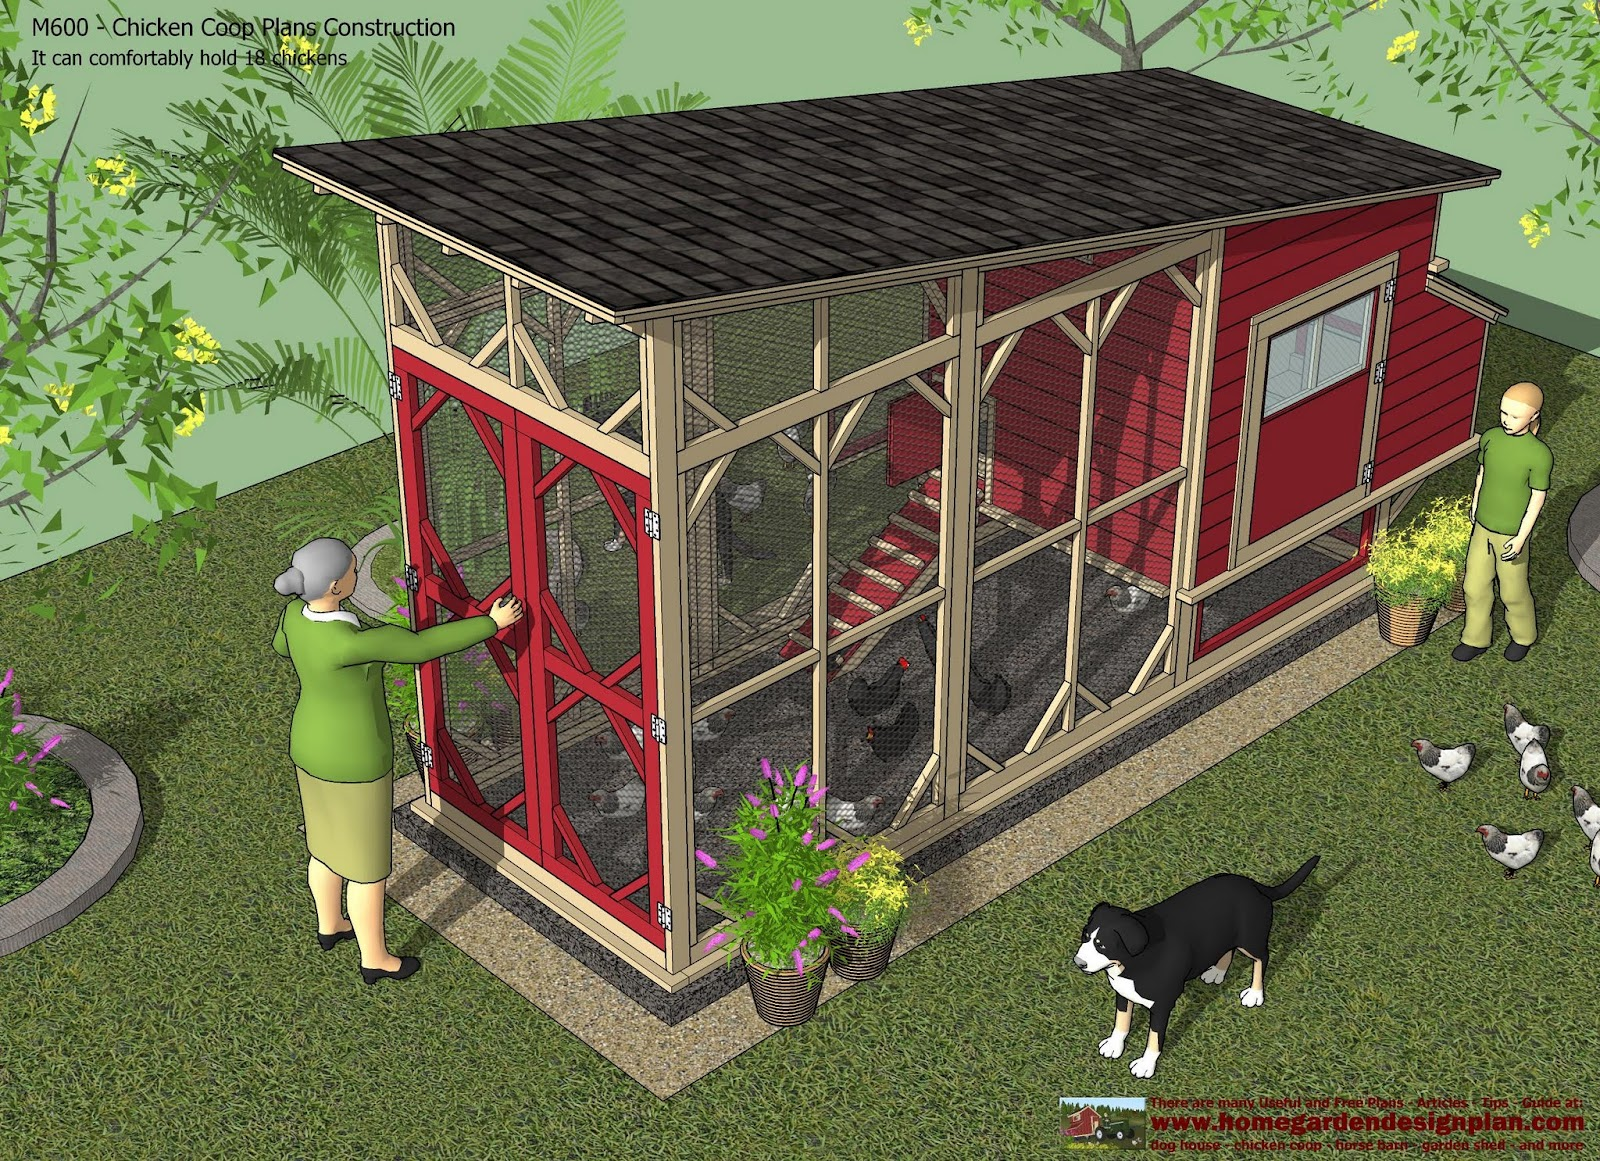 Home garden plans m600 chicken coop plans construction for Garden design new build house